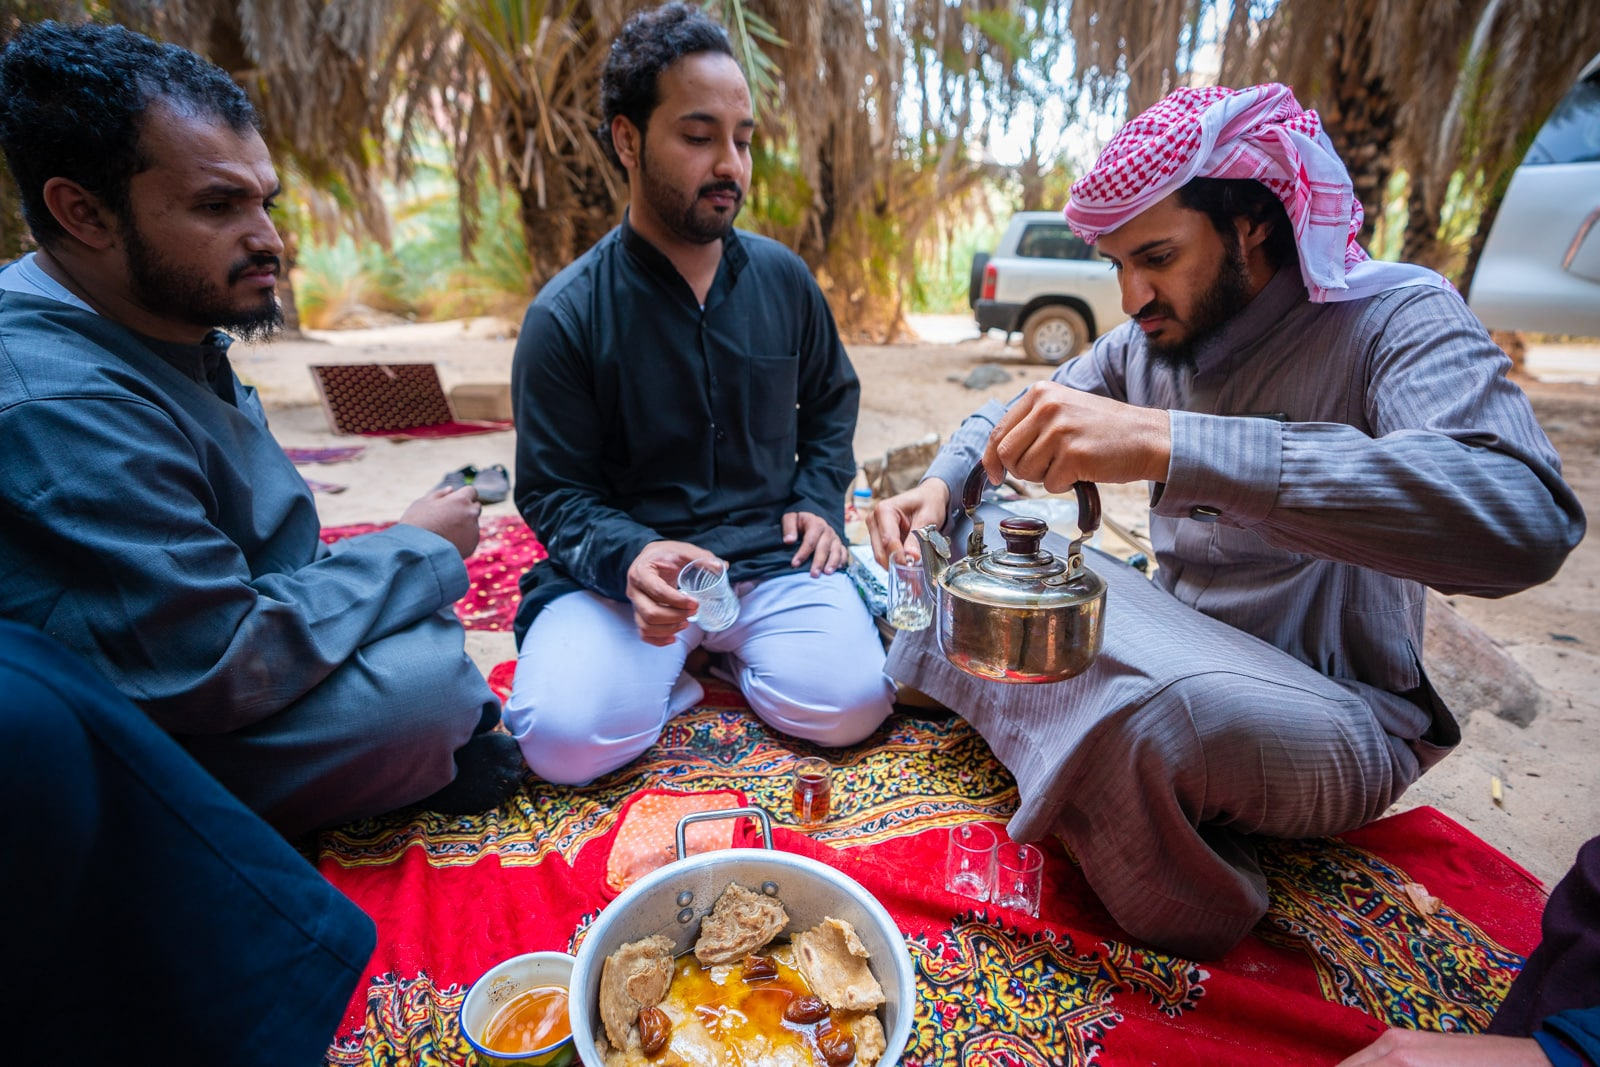 Group of men camping and making tea in Wadi Disah, Saudi Arabia